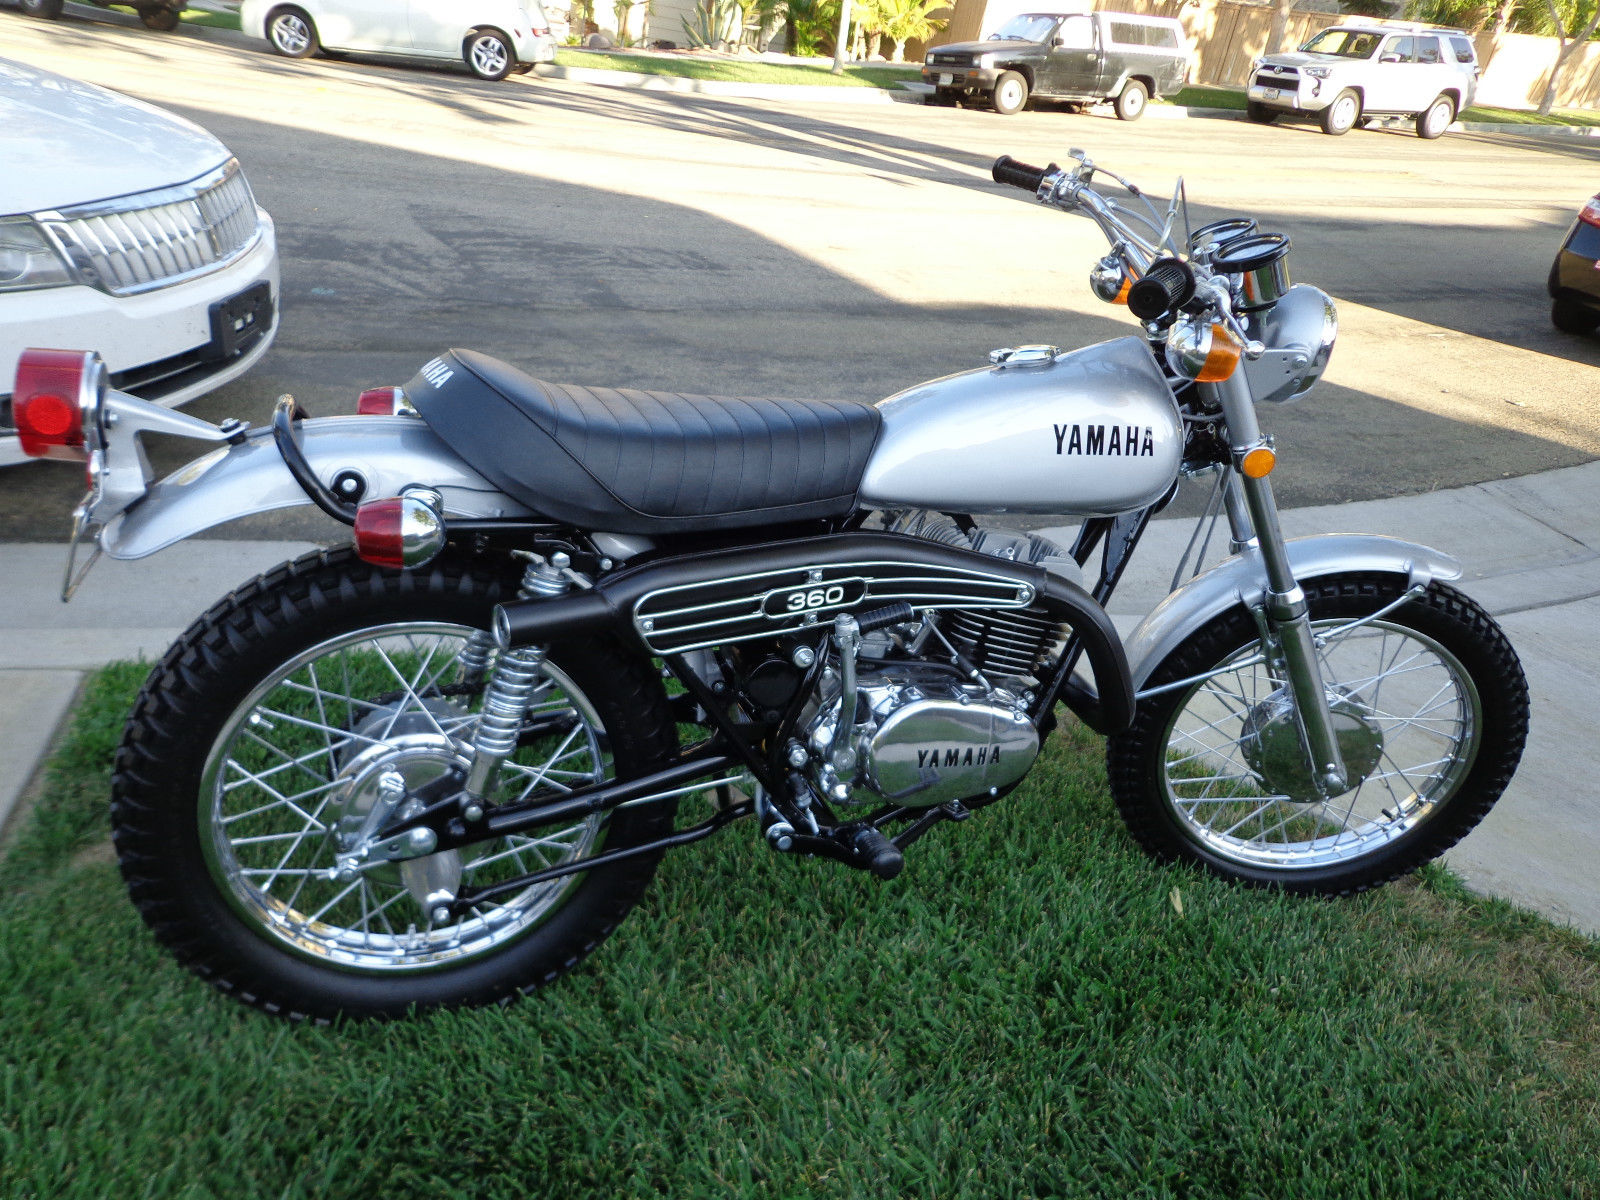 restored yamaha rt2 360 enduro 1972 photographs at classic bikes restored bikes restored. Black Bedroom Furniture Sets. Home Design Ideas